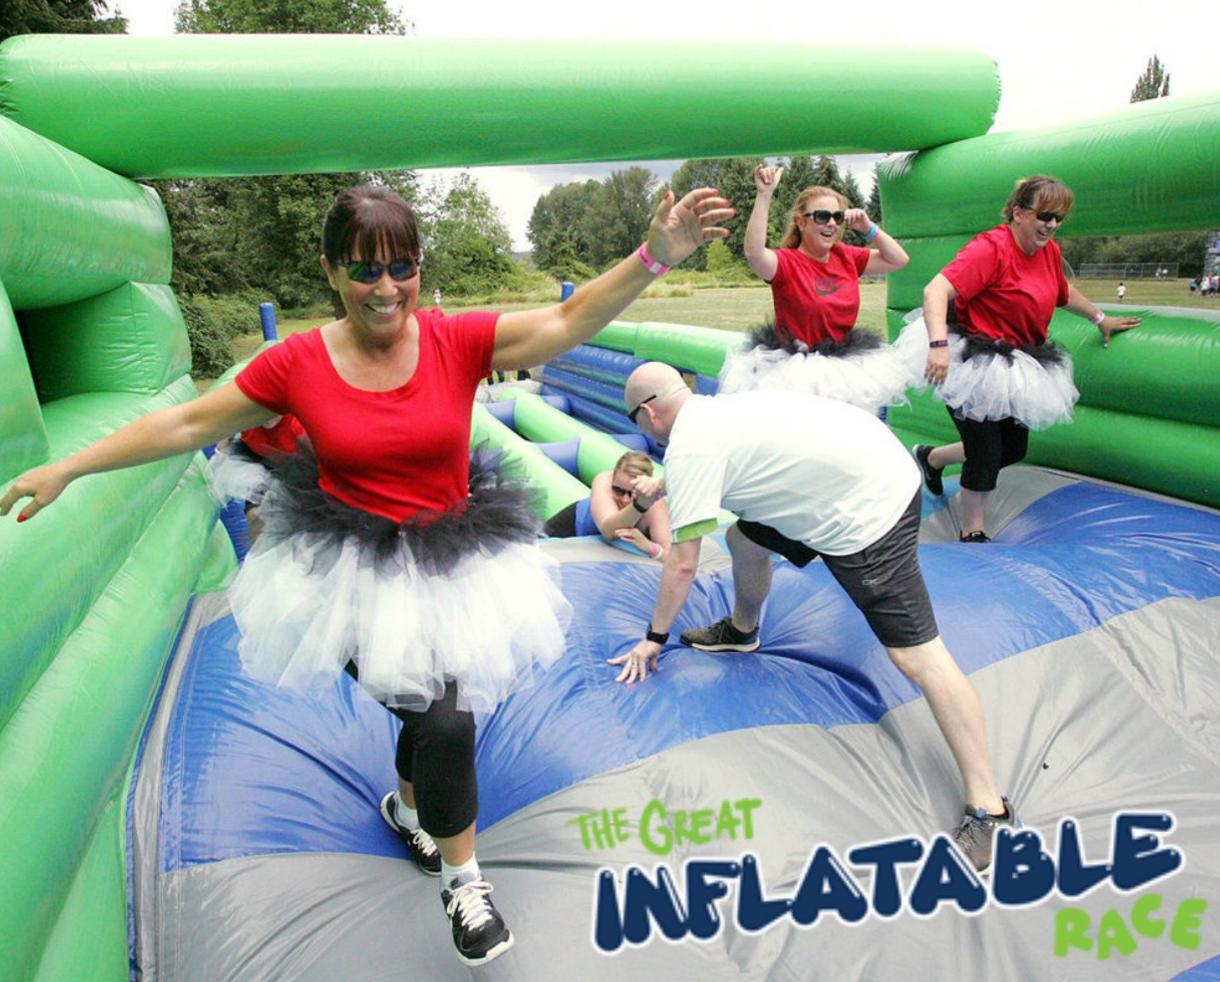 One Entry to The Great Inflatable Race March 17 at Lone Star Park